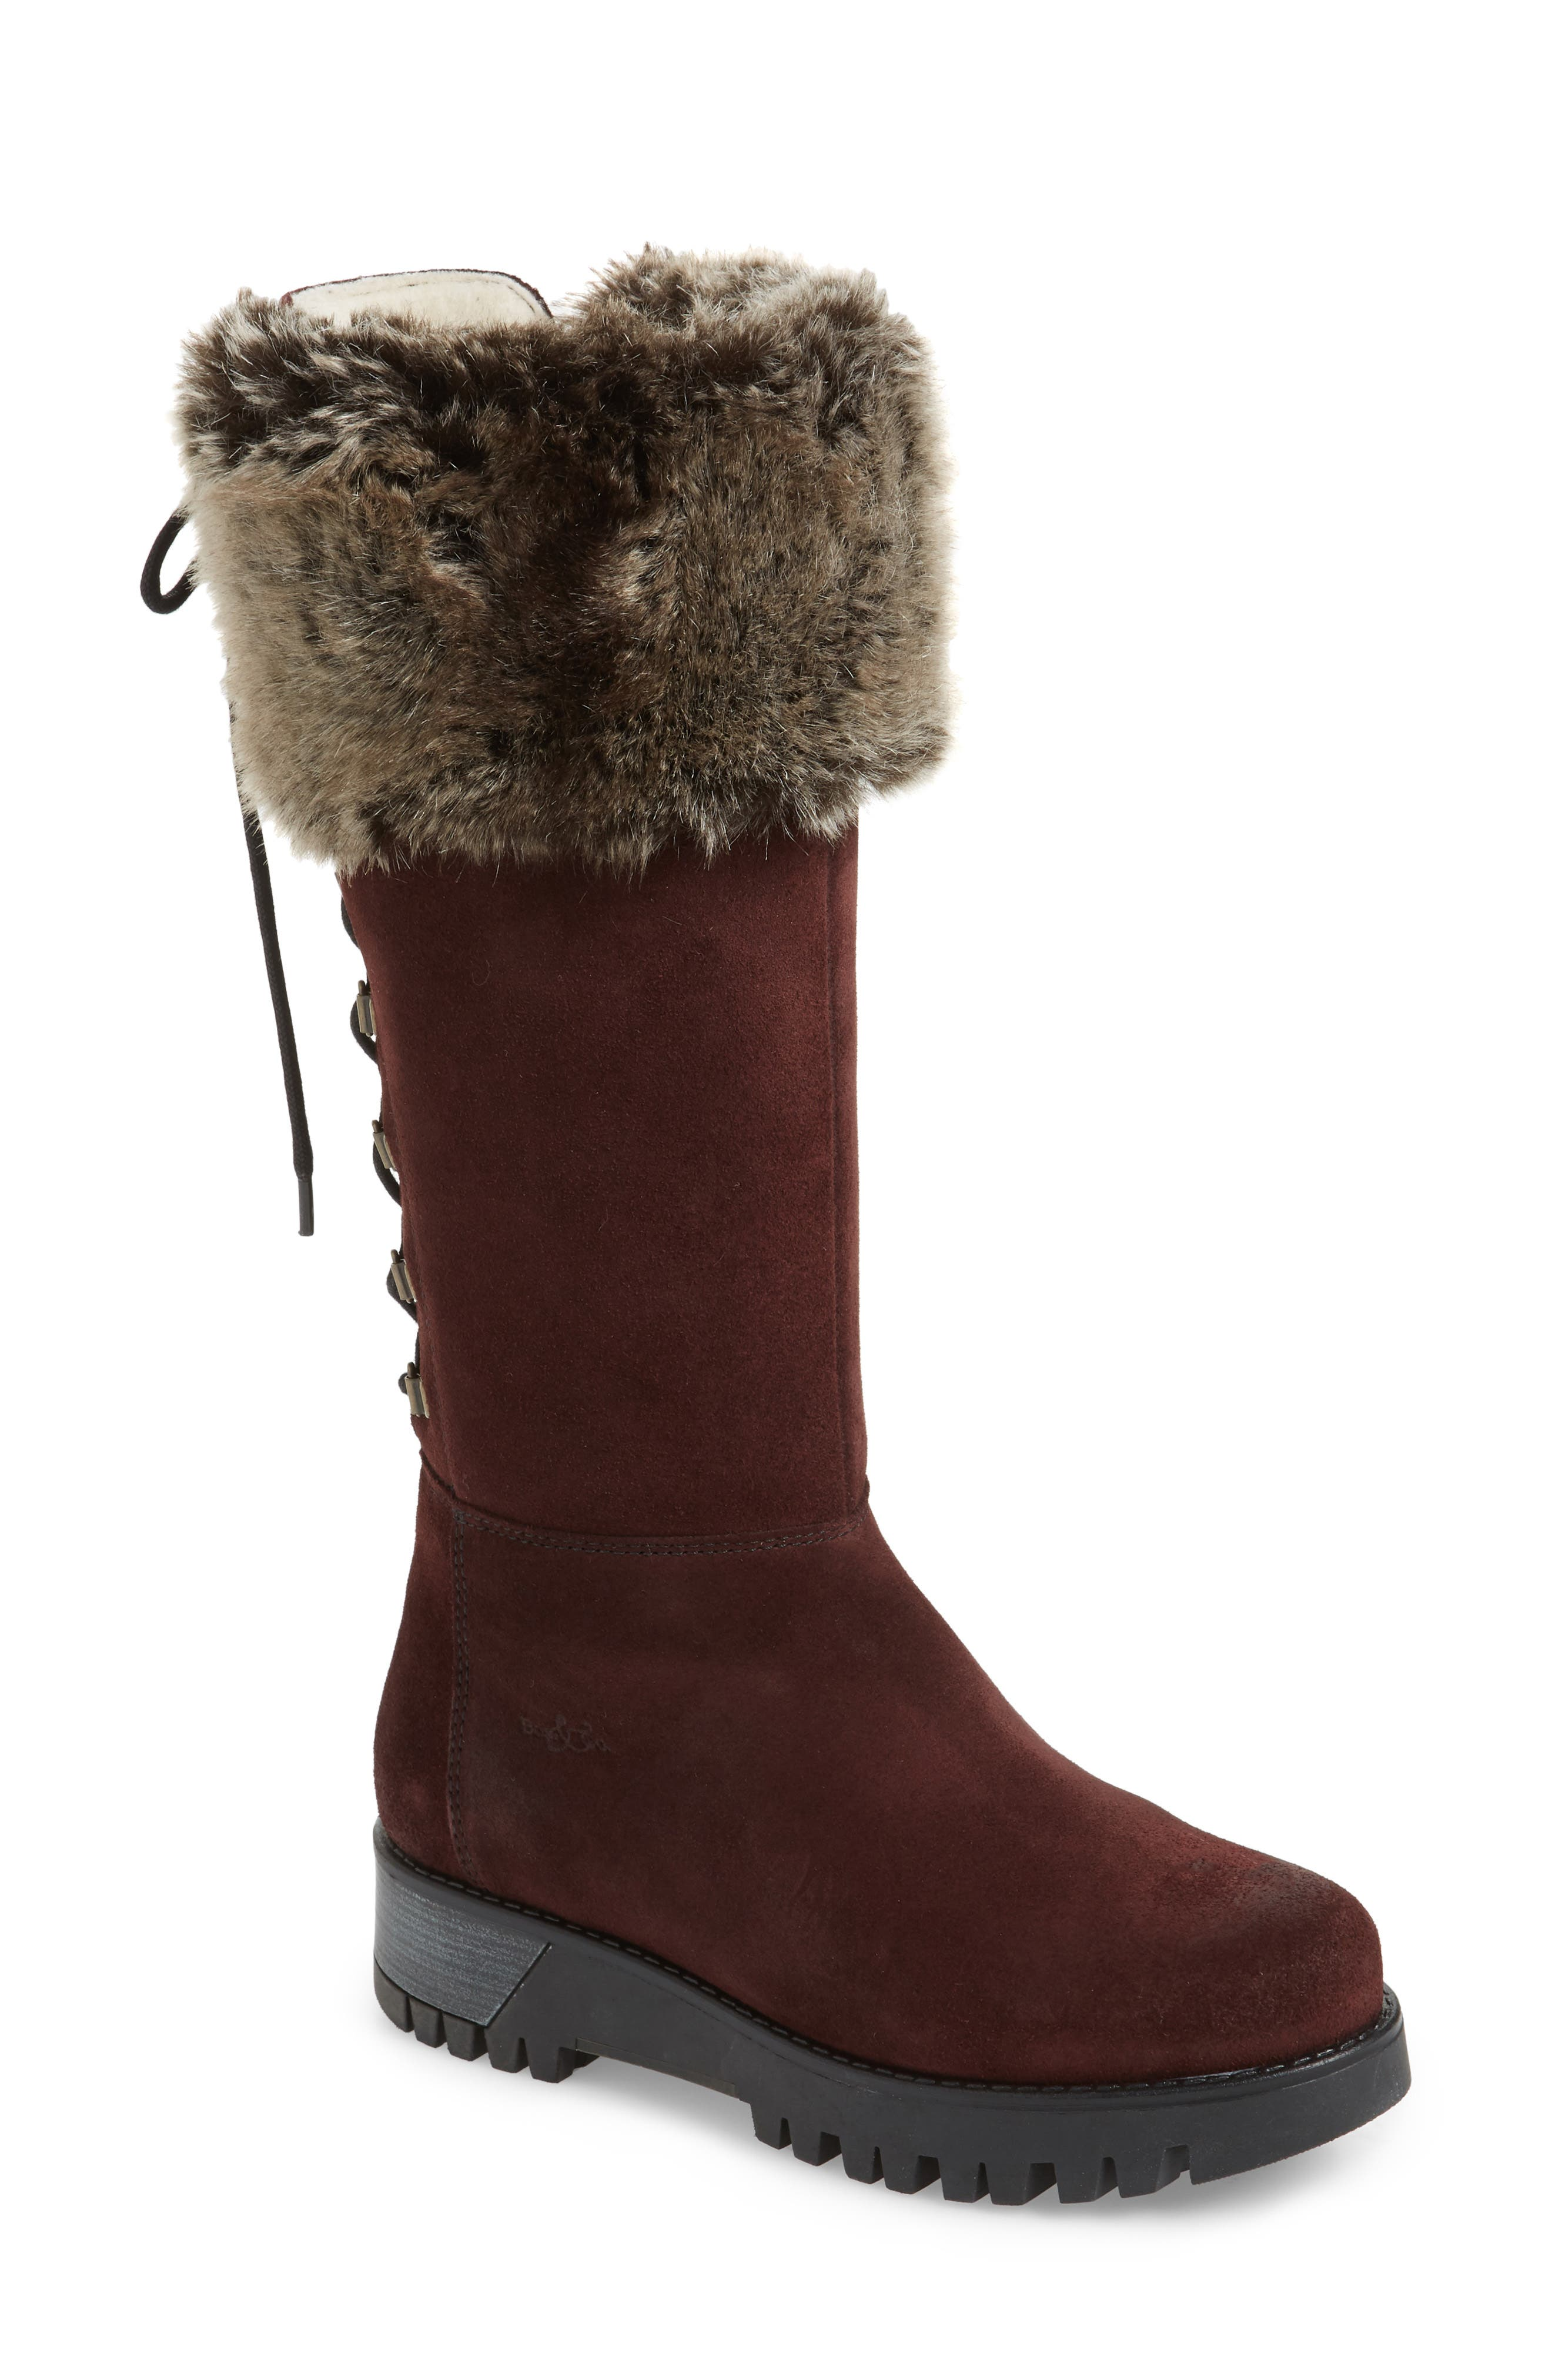 Graham Waterproof Winter Boot with Faux Fur Cuff,                             Main thumbnail 1, color,                             Wine Suede